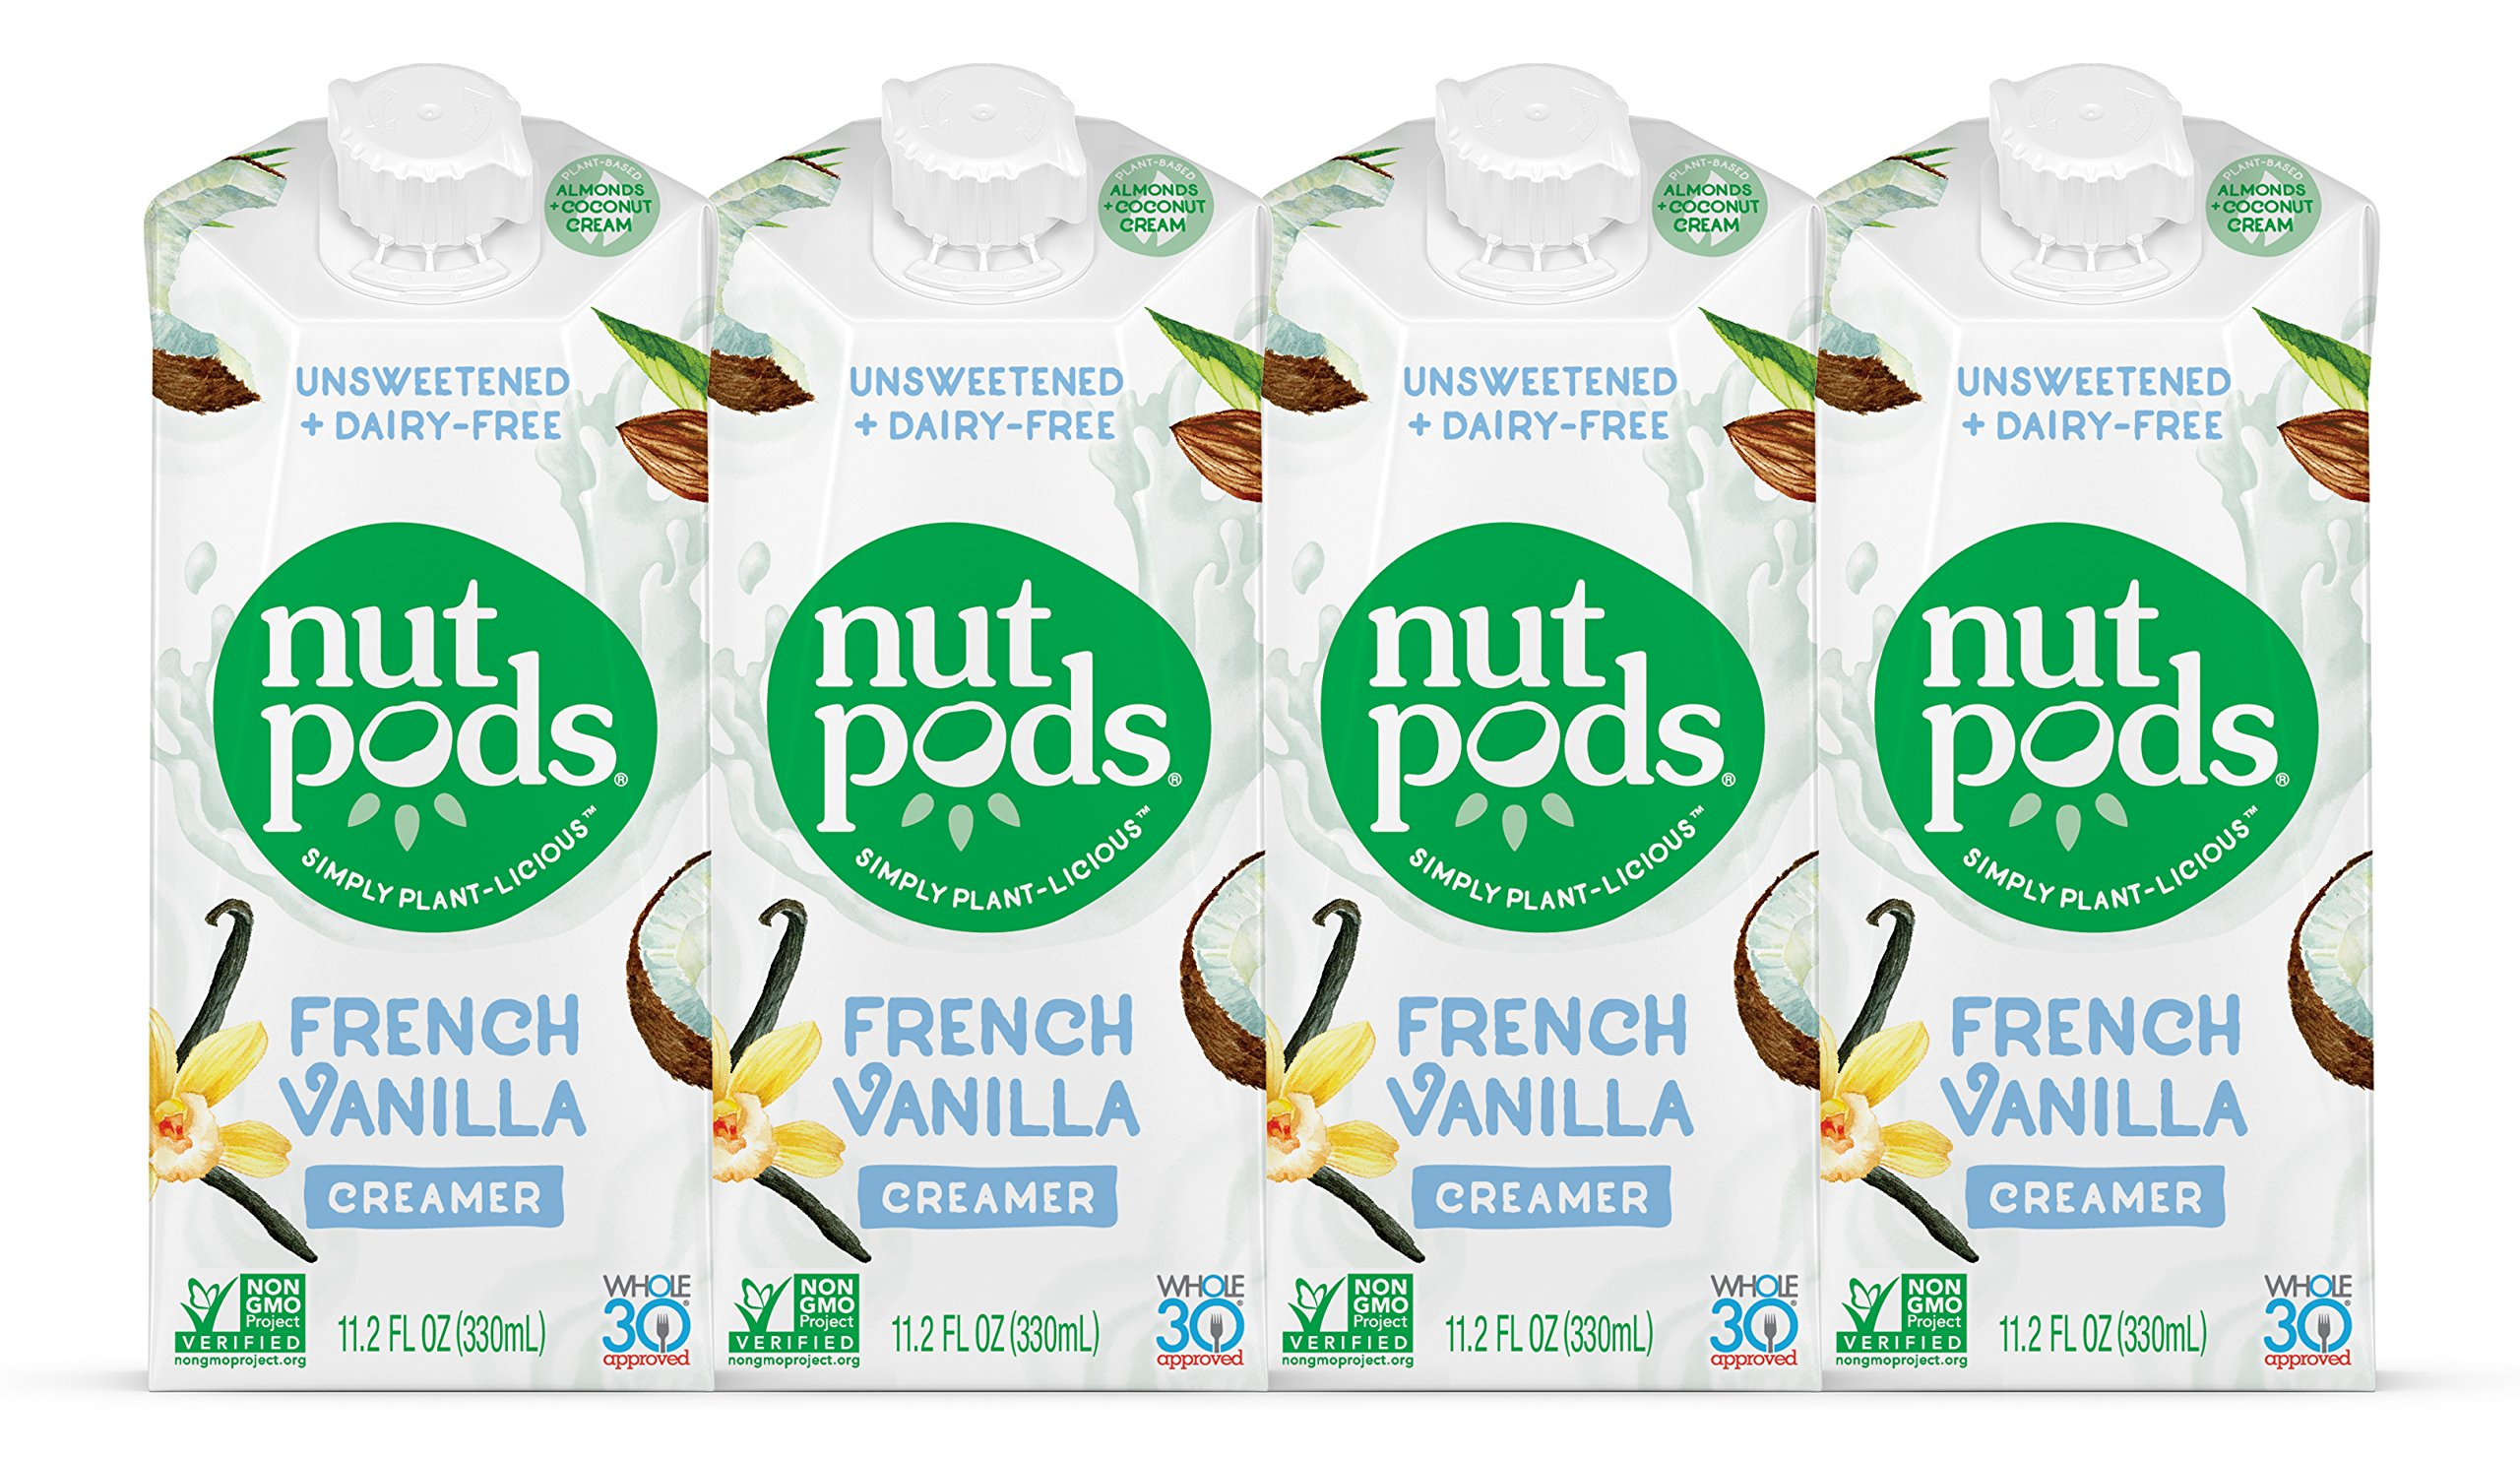 nutpods Dairy-Free Creamer Unsweetened (French Vanilla, 4-pack) - Whole30 / Paleo / Keto / Vegan / Sugar Free